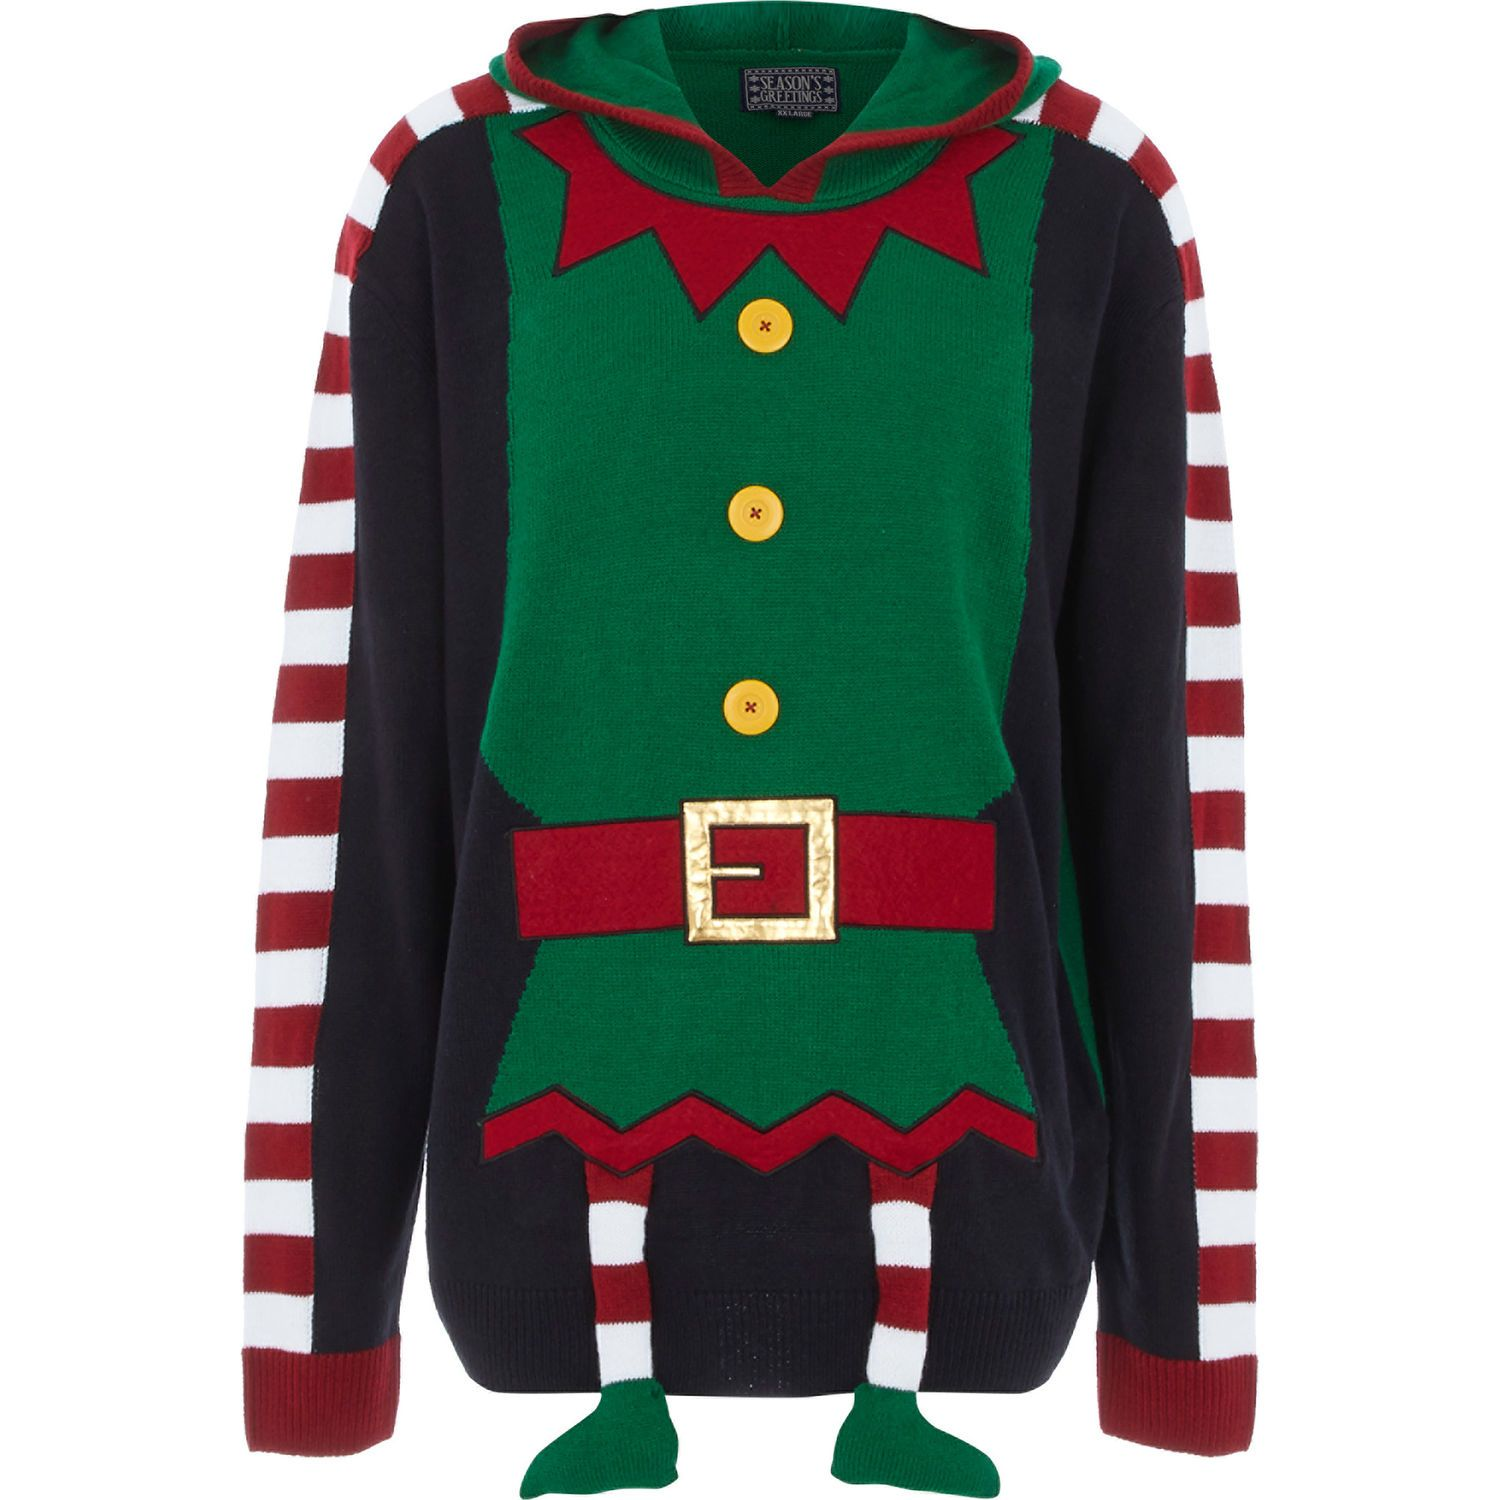 Green Elf Jumper Men's Christmas Jumpers Christmas